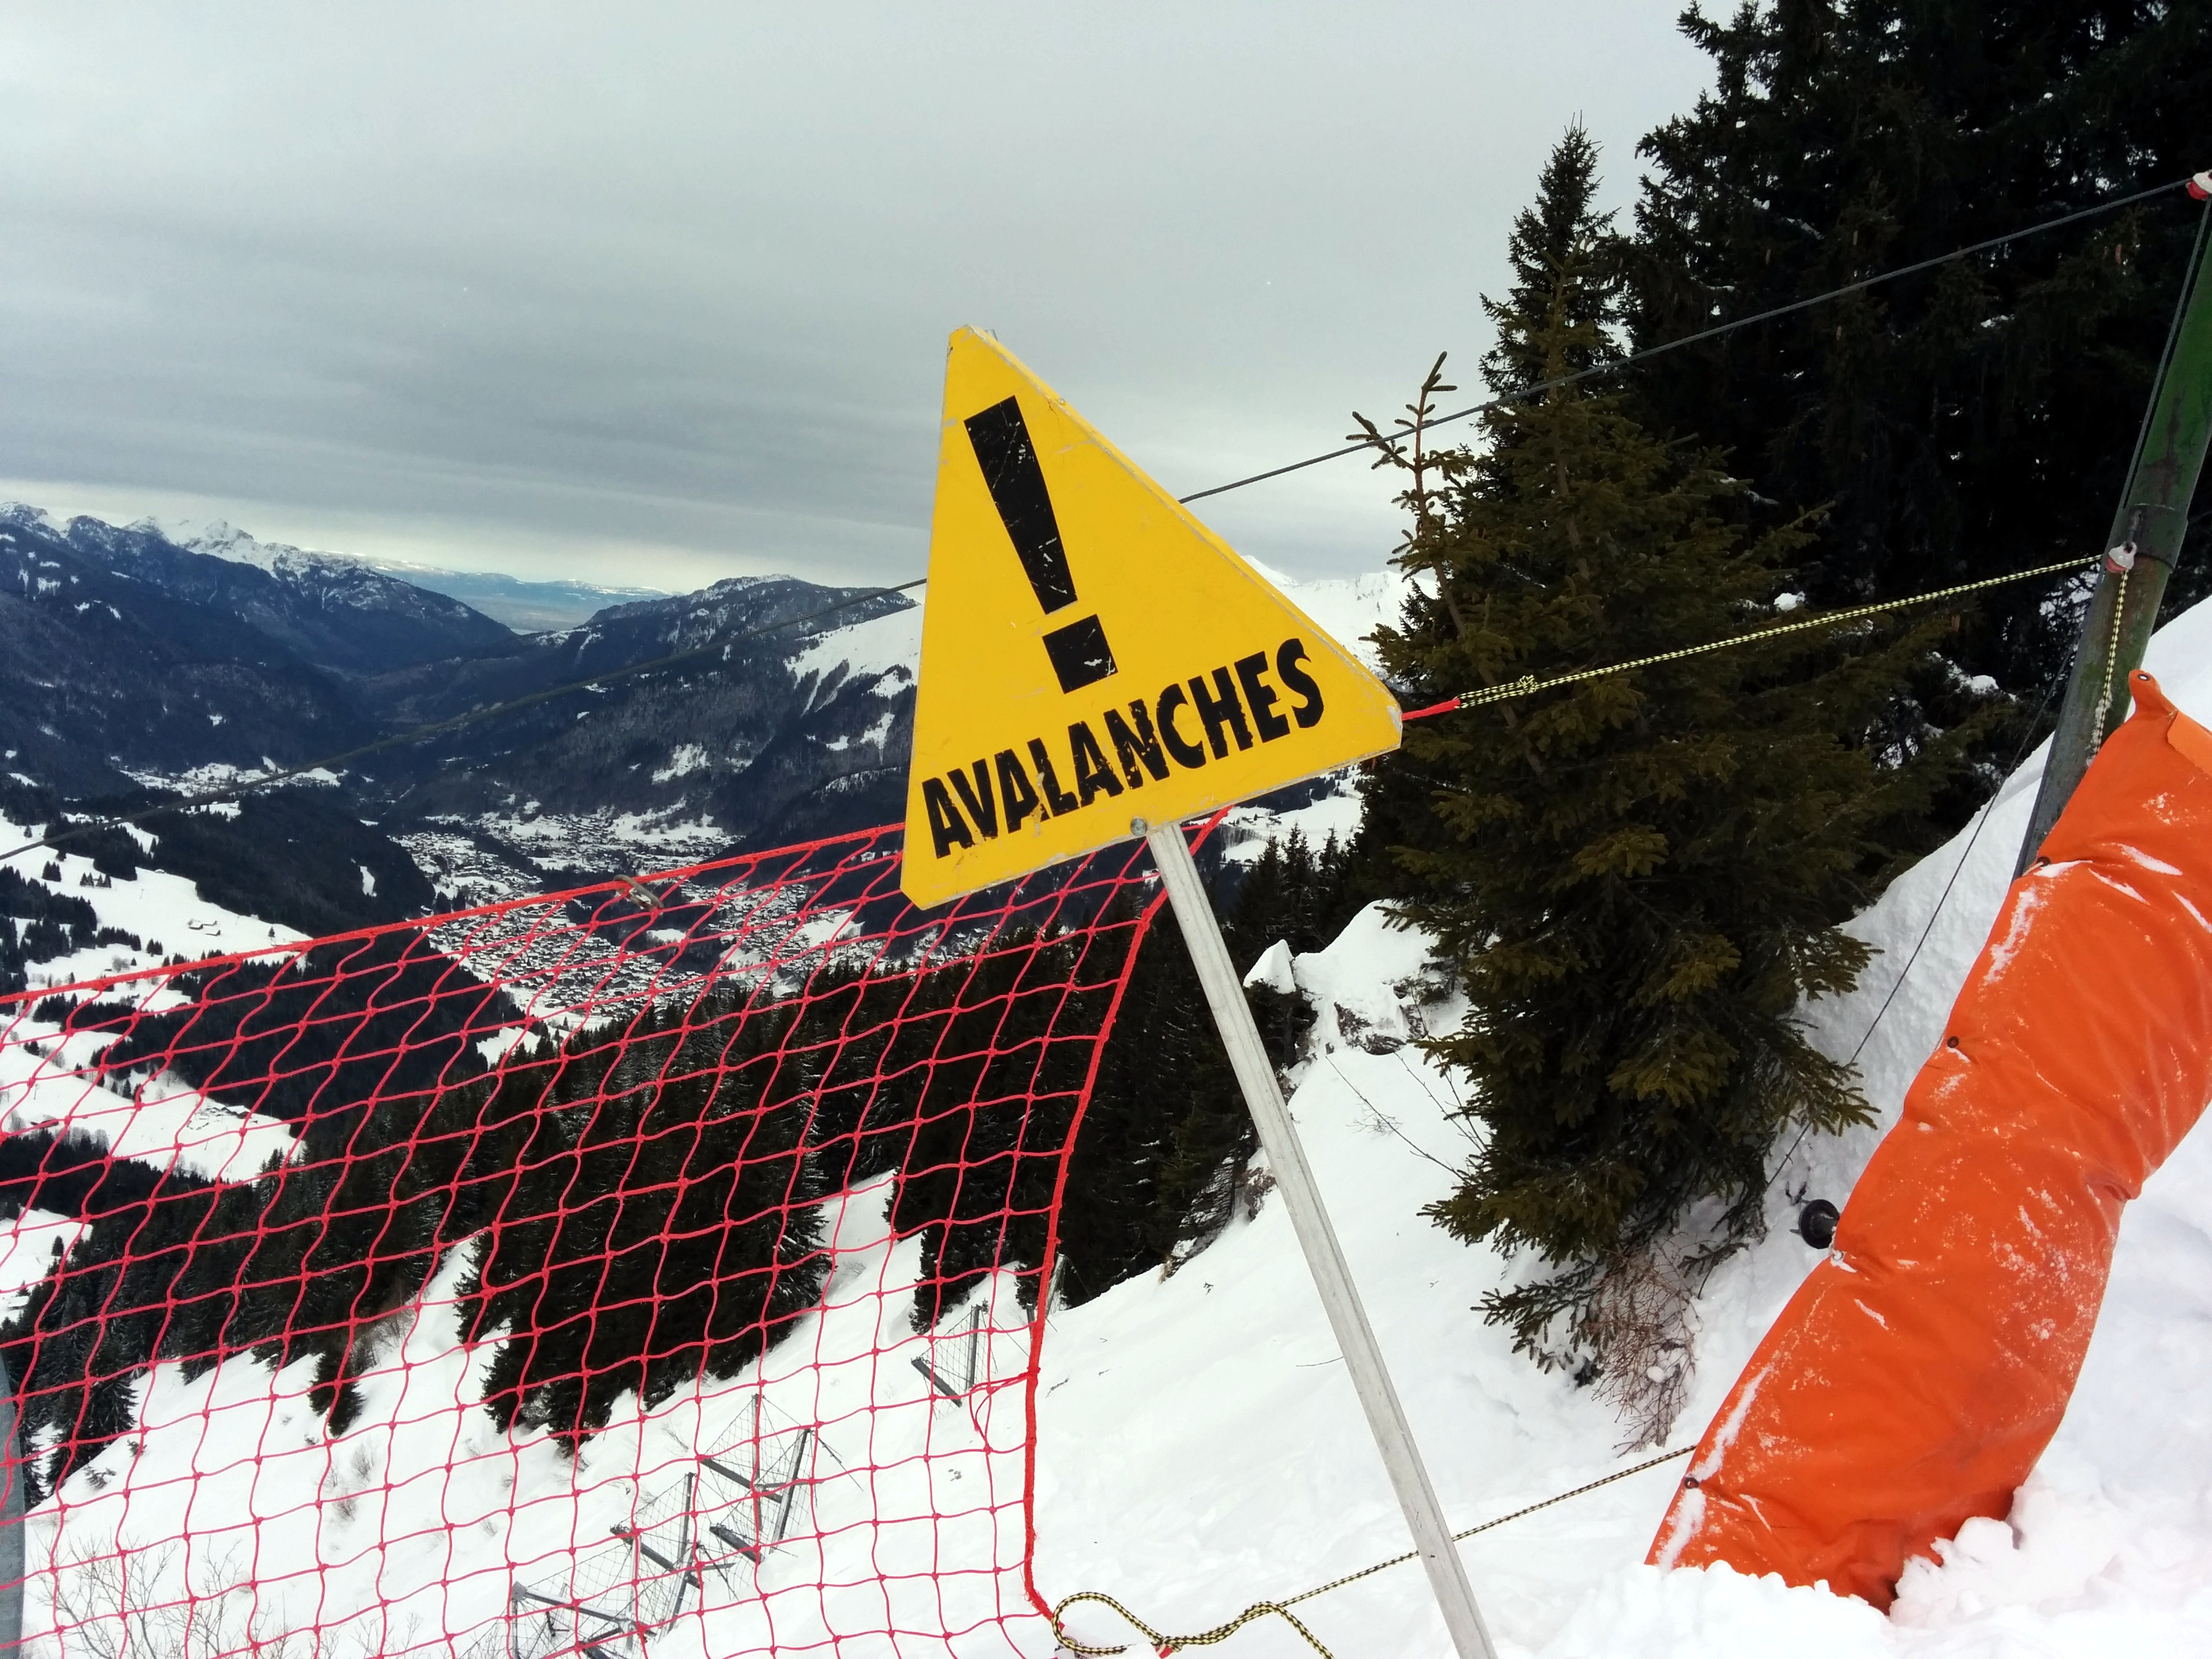 Avalanche Quiz - Avalanche Warning Sign on a Snowy Mountain image